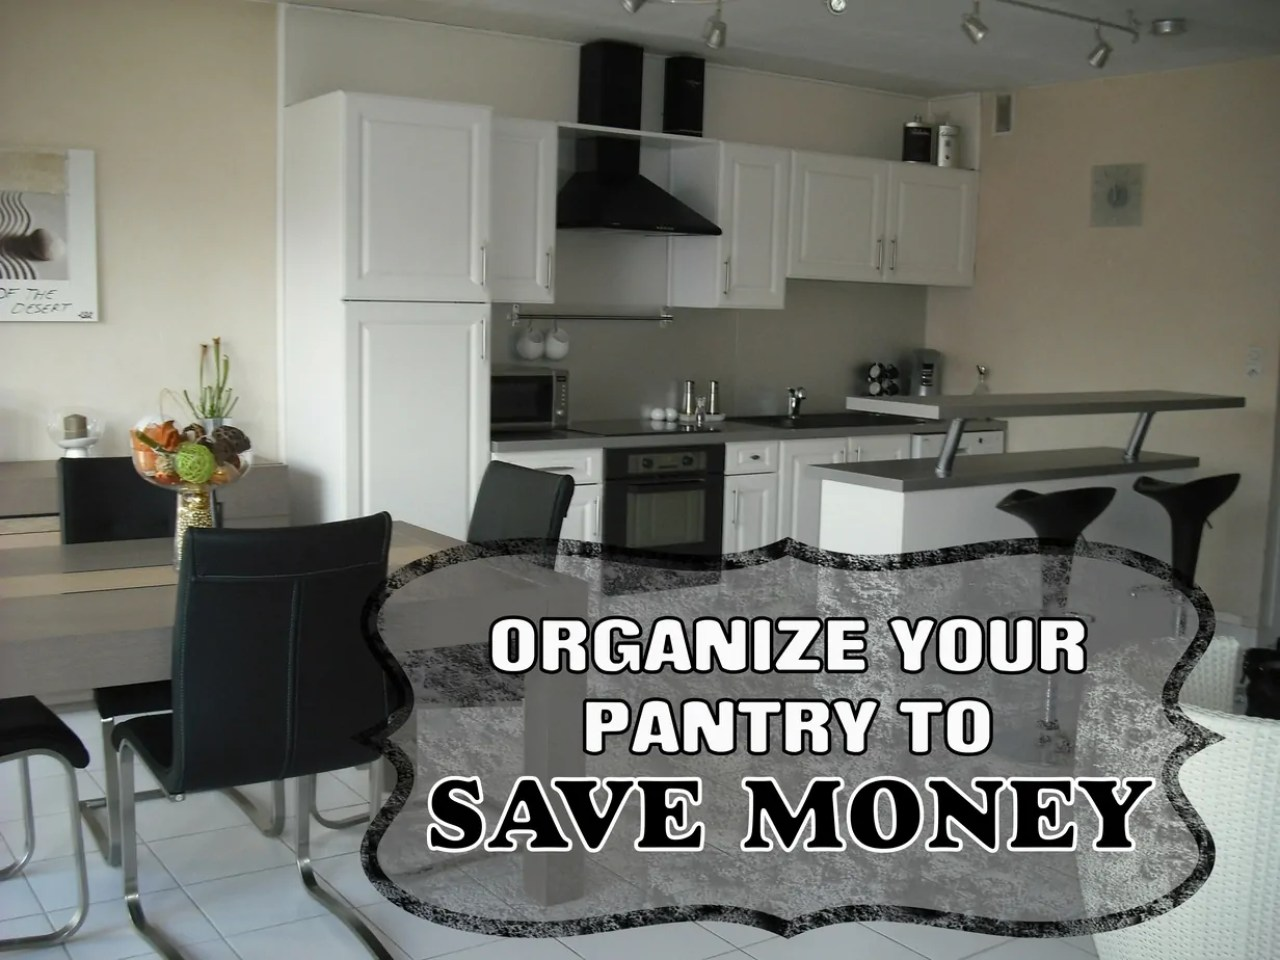 Organize Your Pantry to Save Money